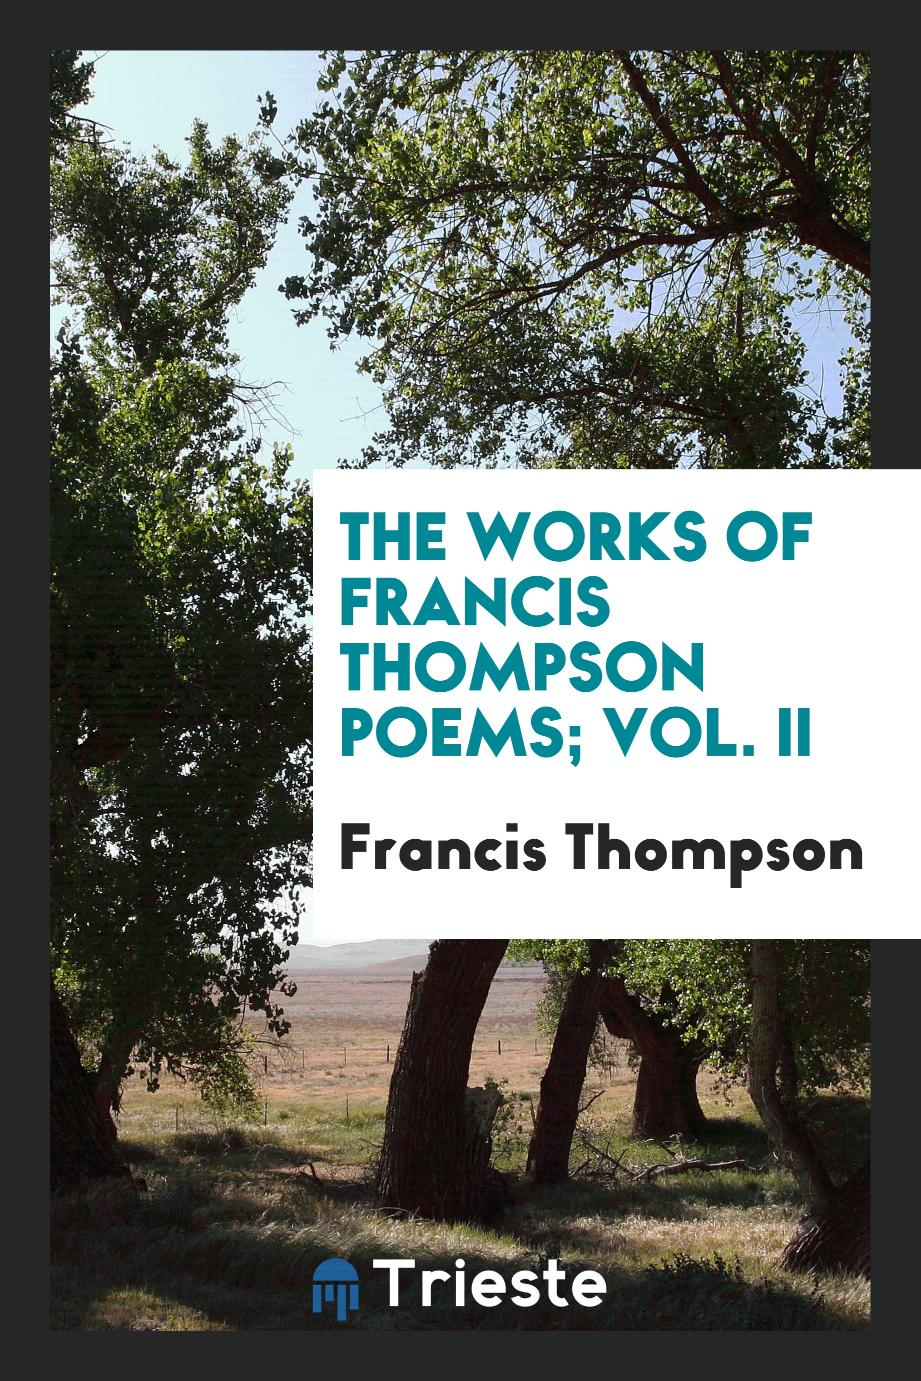 The works of Francis Thompson poems; Vol. II